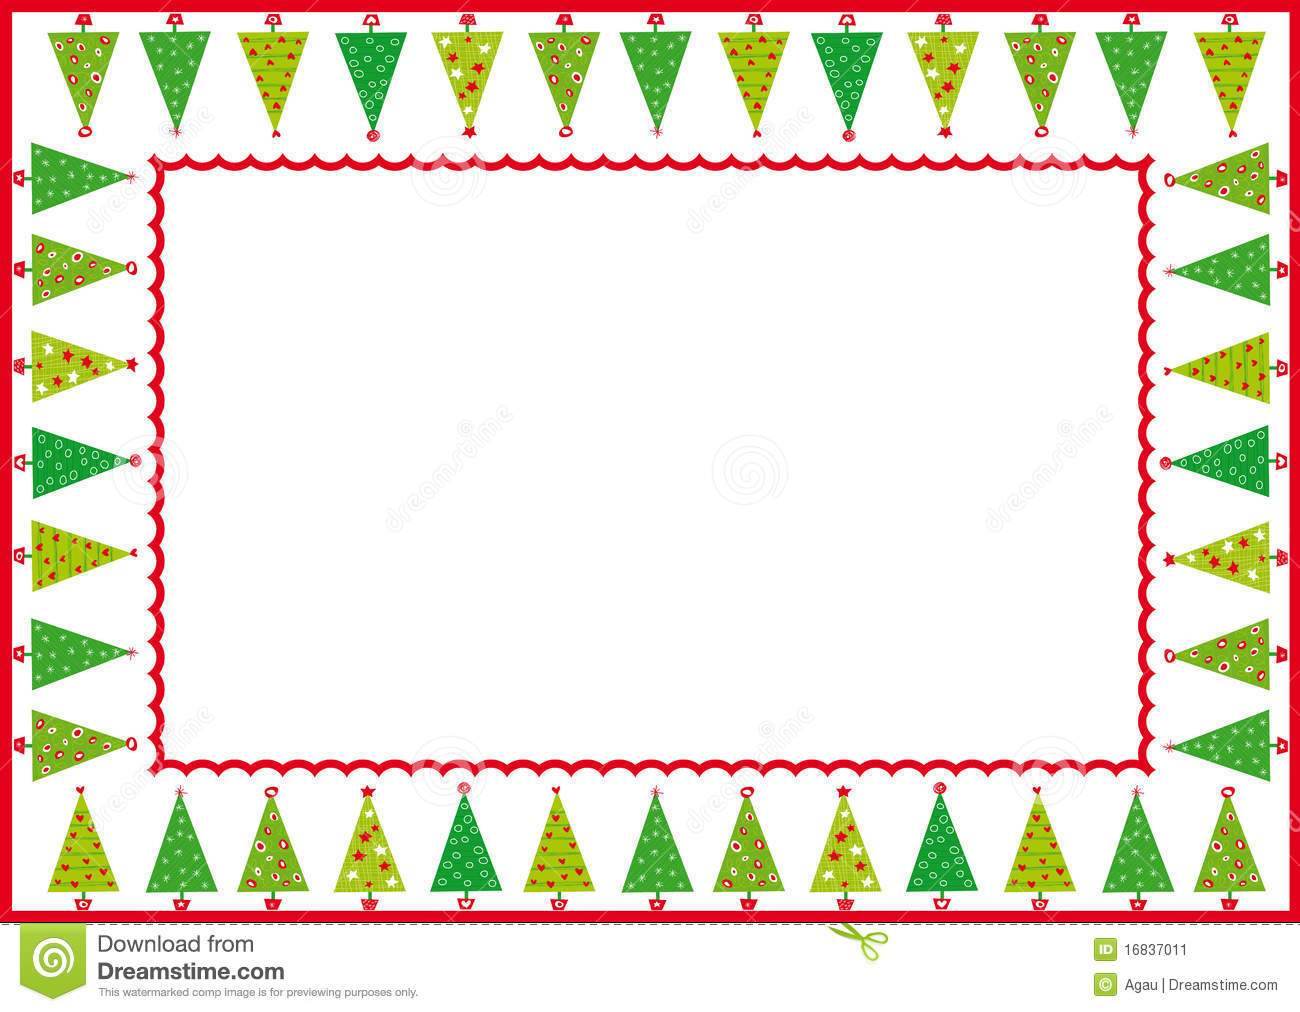 Christmas Tree Clip Art Bordersjeepwranglerpartsandaccessories